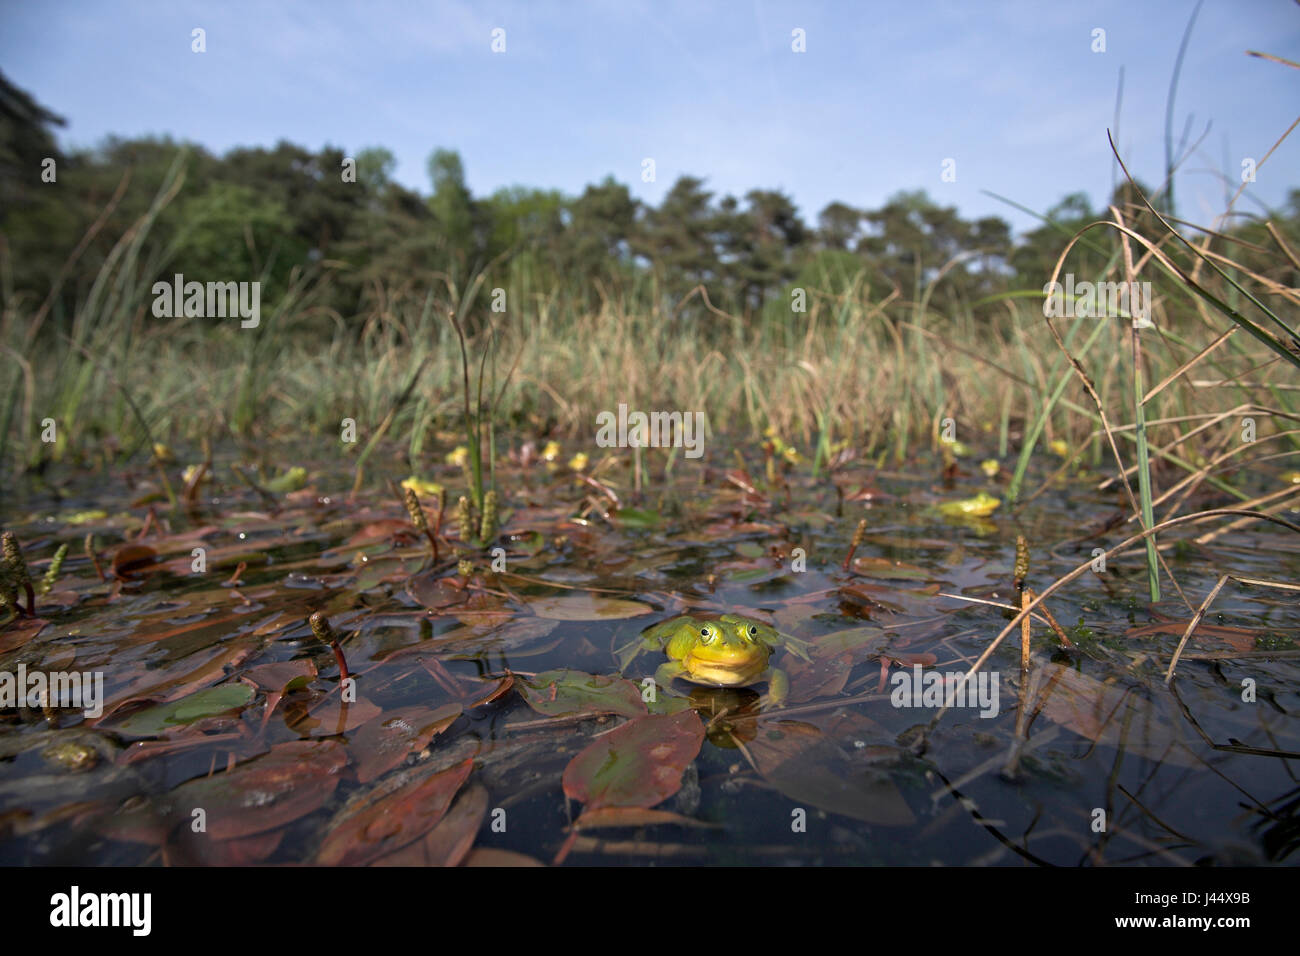 overview of a choir of male poolfrogs in early spring, males of the pool frog turn yellow during breeding season - Stock Image